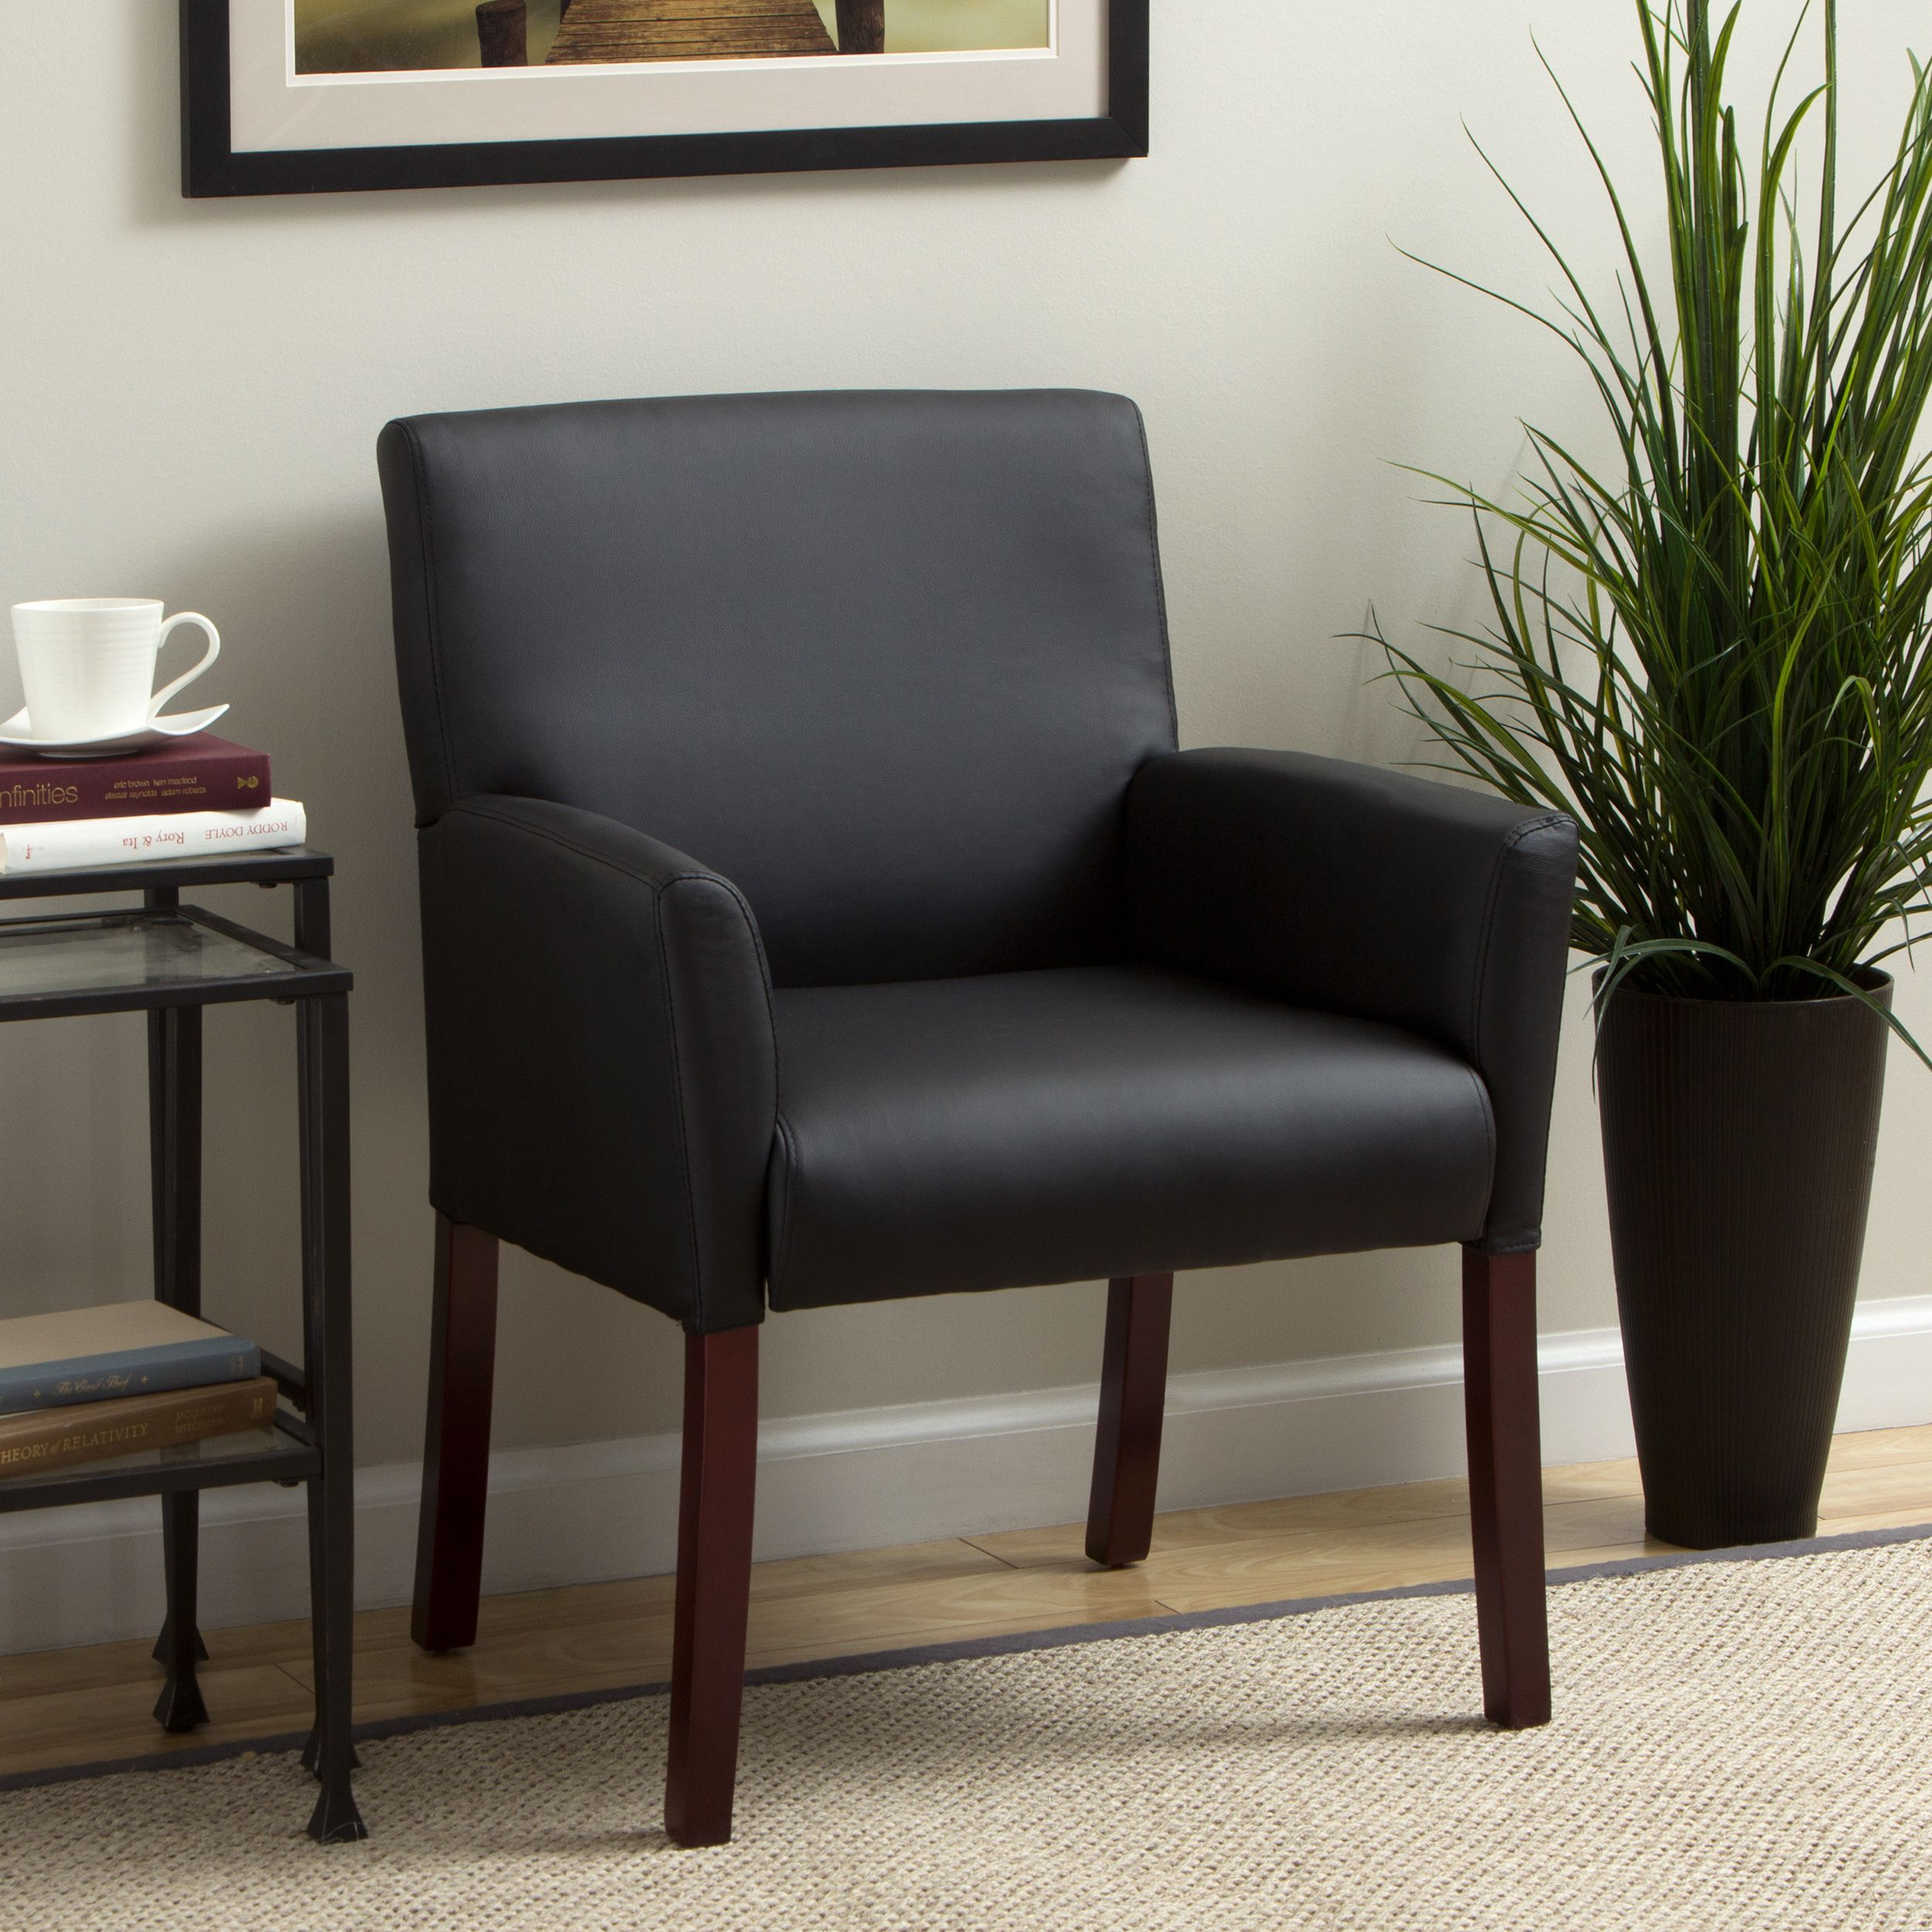 Soft And Durable, This Black Guest Arm Chair From Boss Caressoft Will  Provide Long Lasting Comfort In Your Home Or Office. Molded Polyurethane  Armrests ...